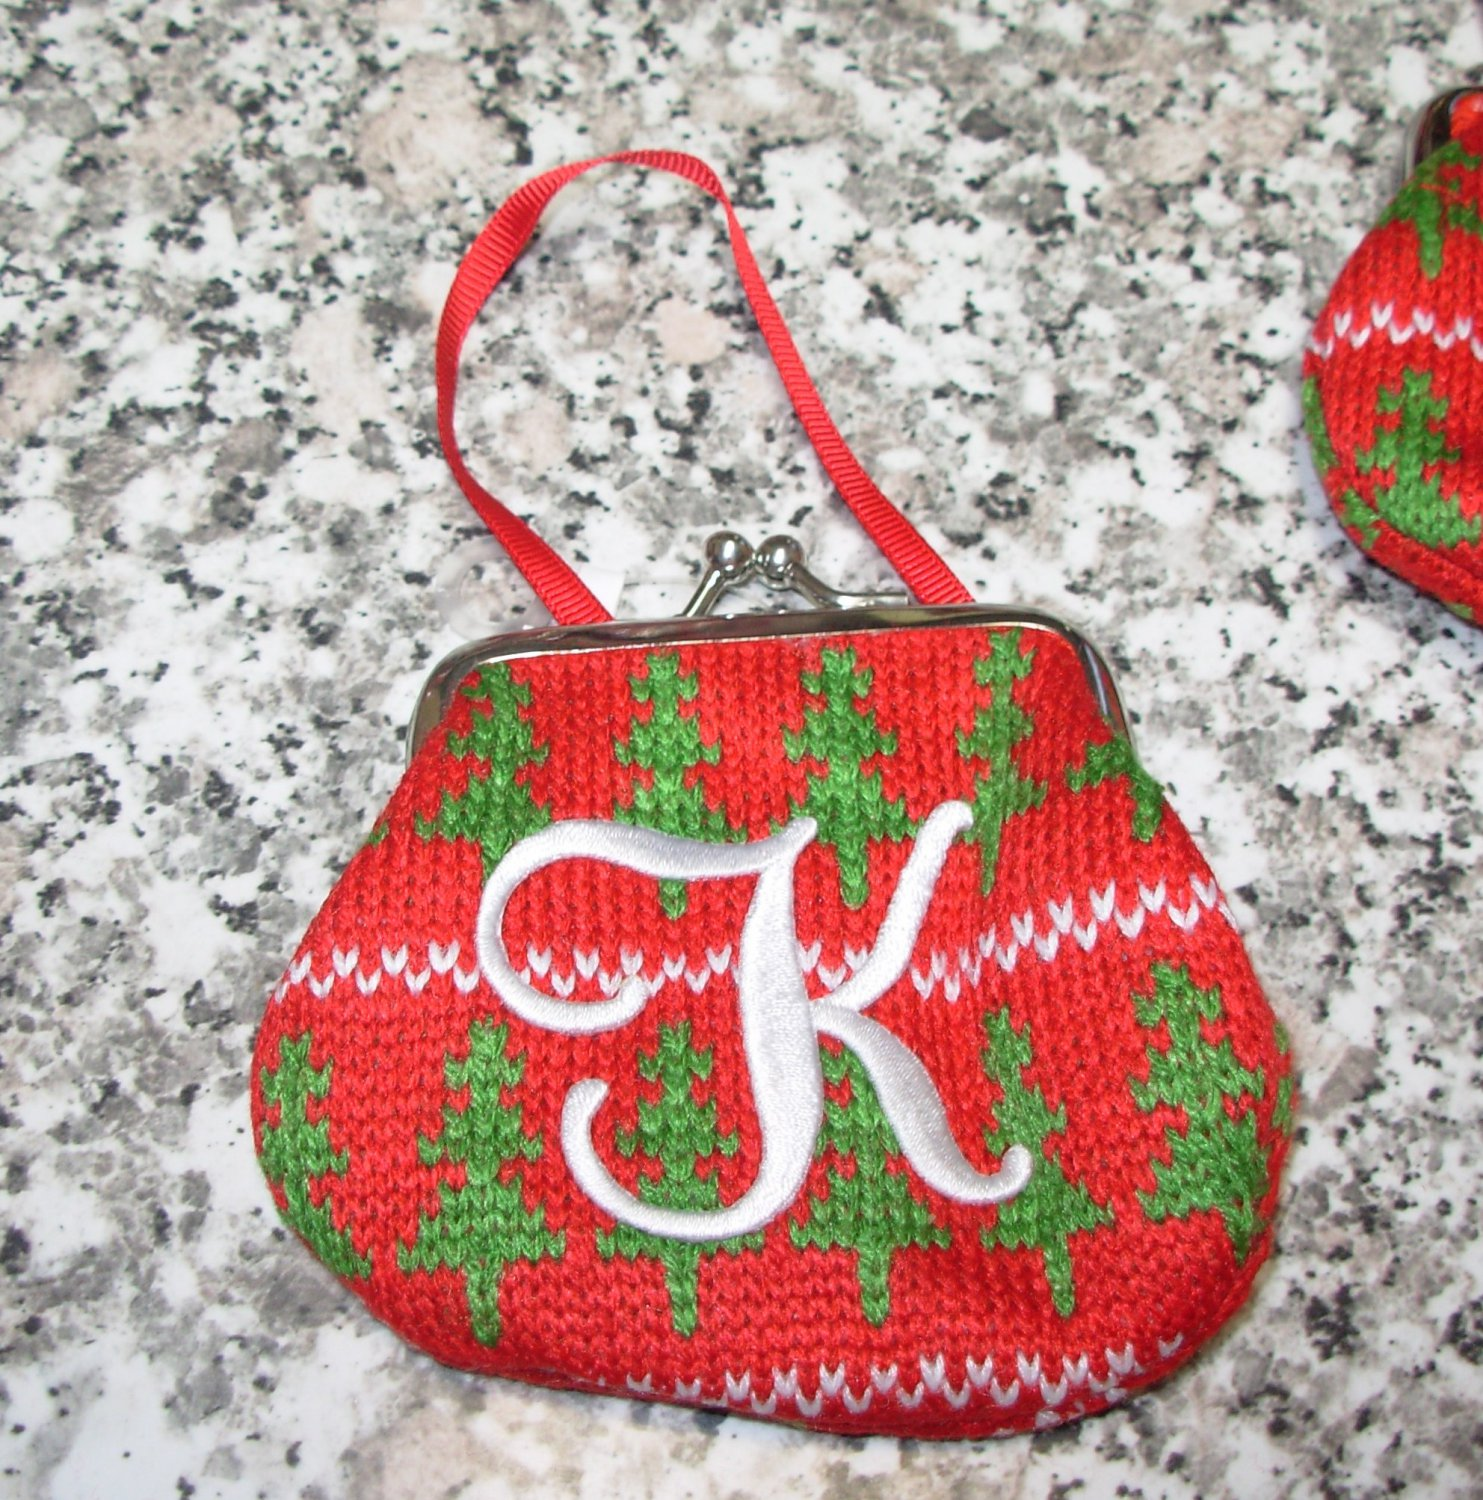 MONOGRAMED LETTER K HOLIDAY COIN PURSE ORNAMENT PERSONALIZED GIFT CARD HOLDER NEW GANZ